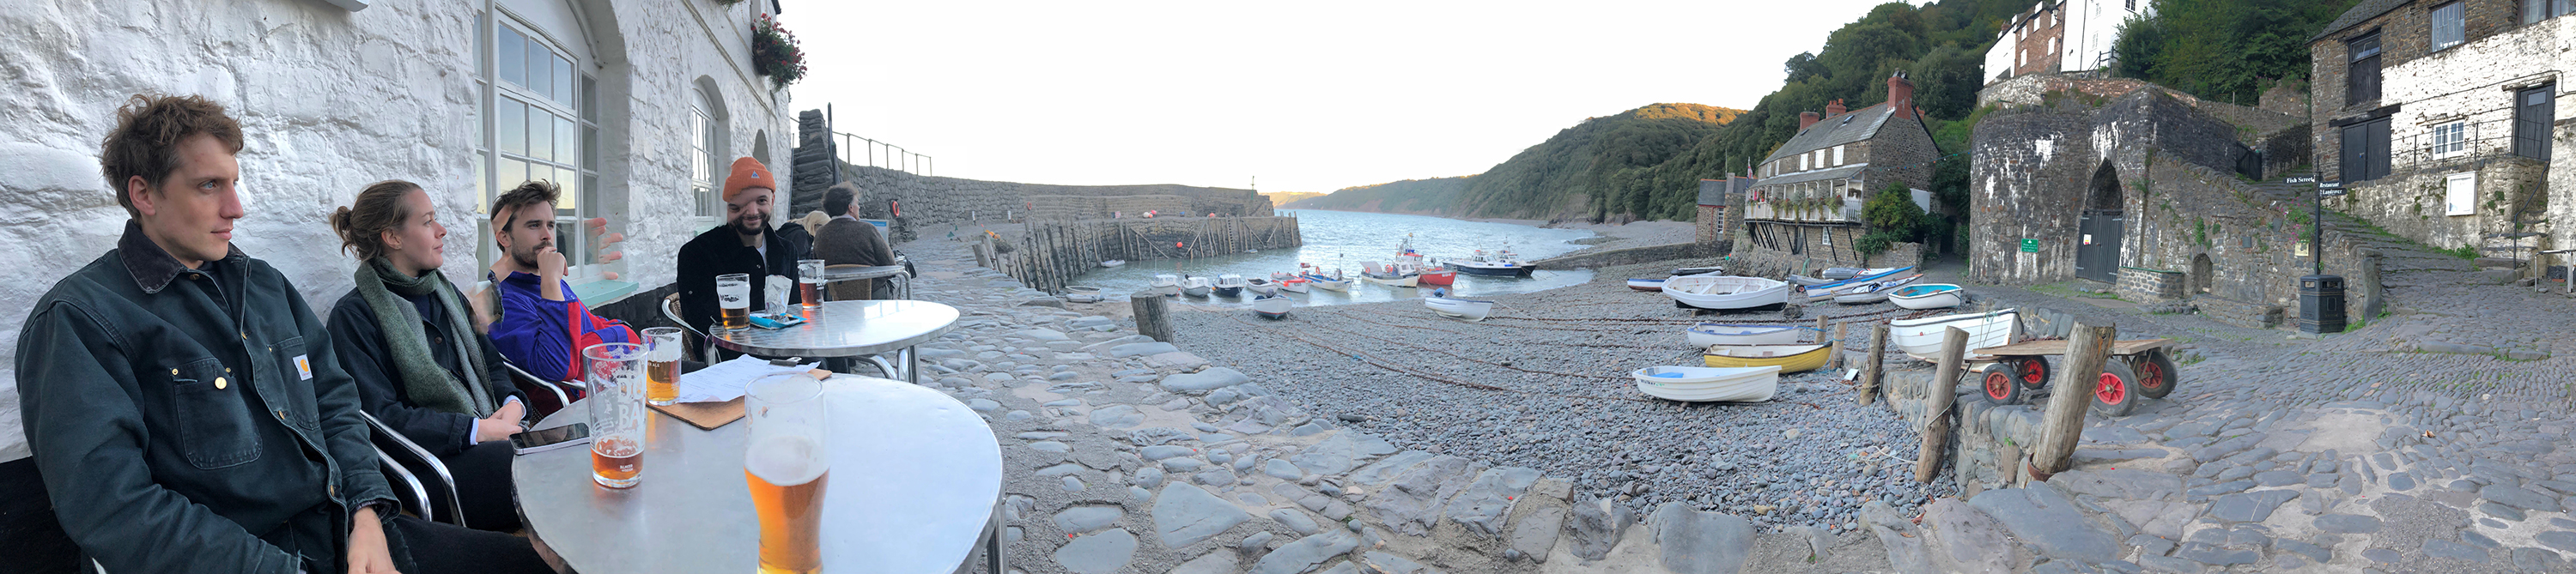 Panoramic photo of friends with pints in Clovelly Bay, Devon